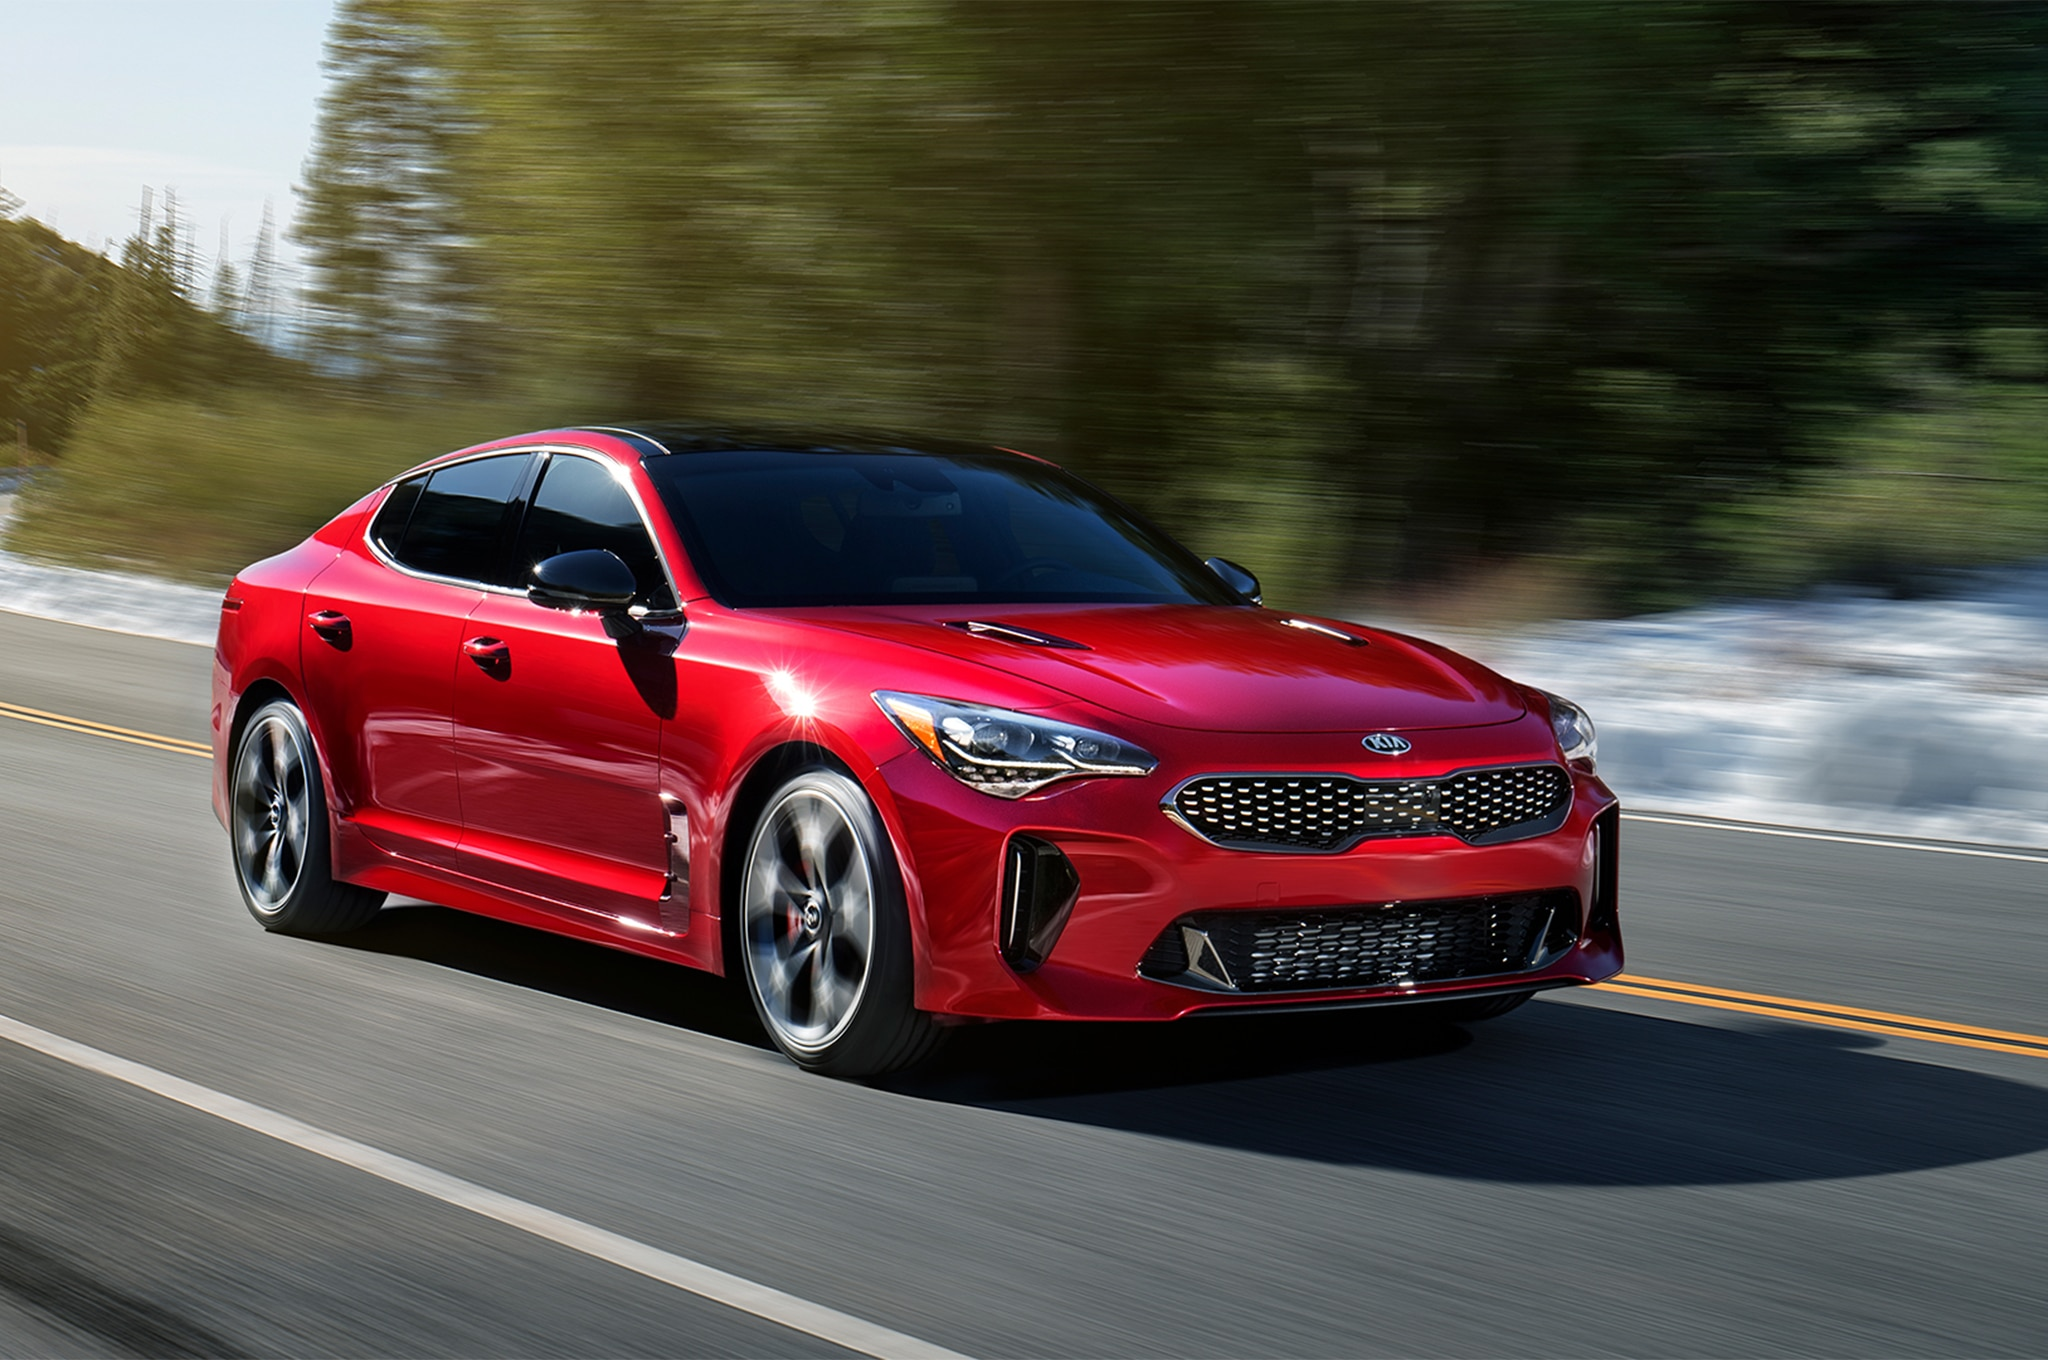 2018 Kia Stinger Gt One Of The Most Underrated Cars This Year